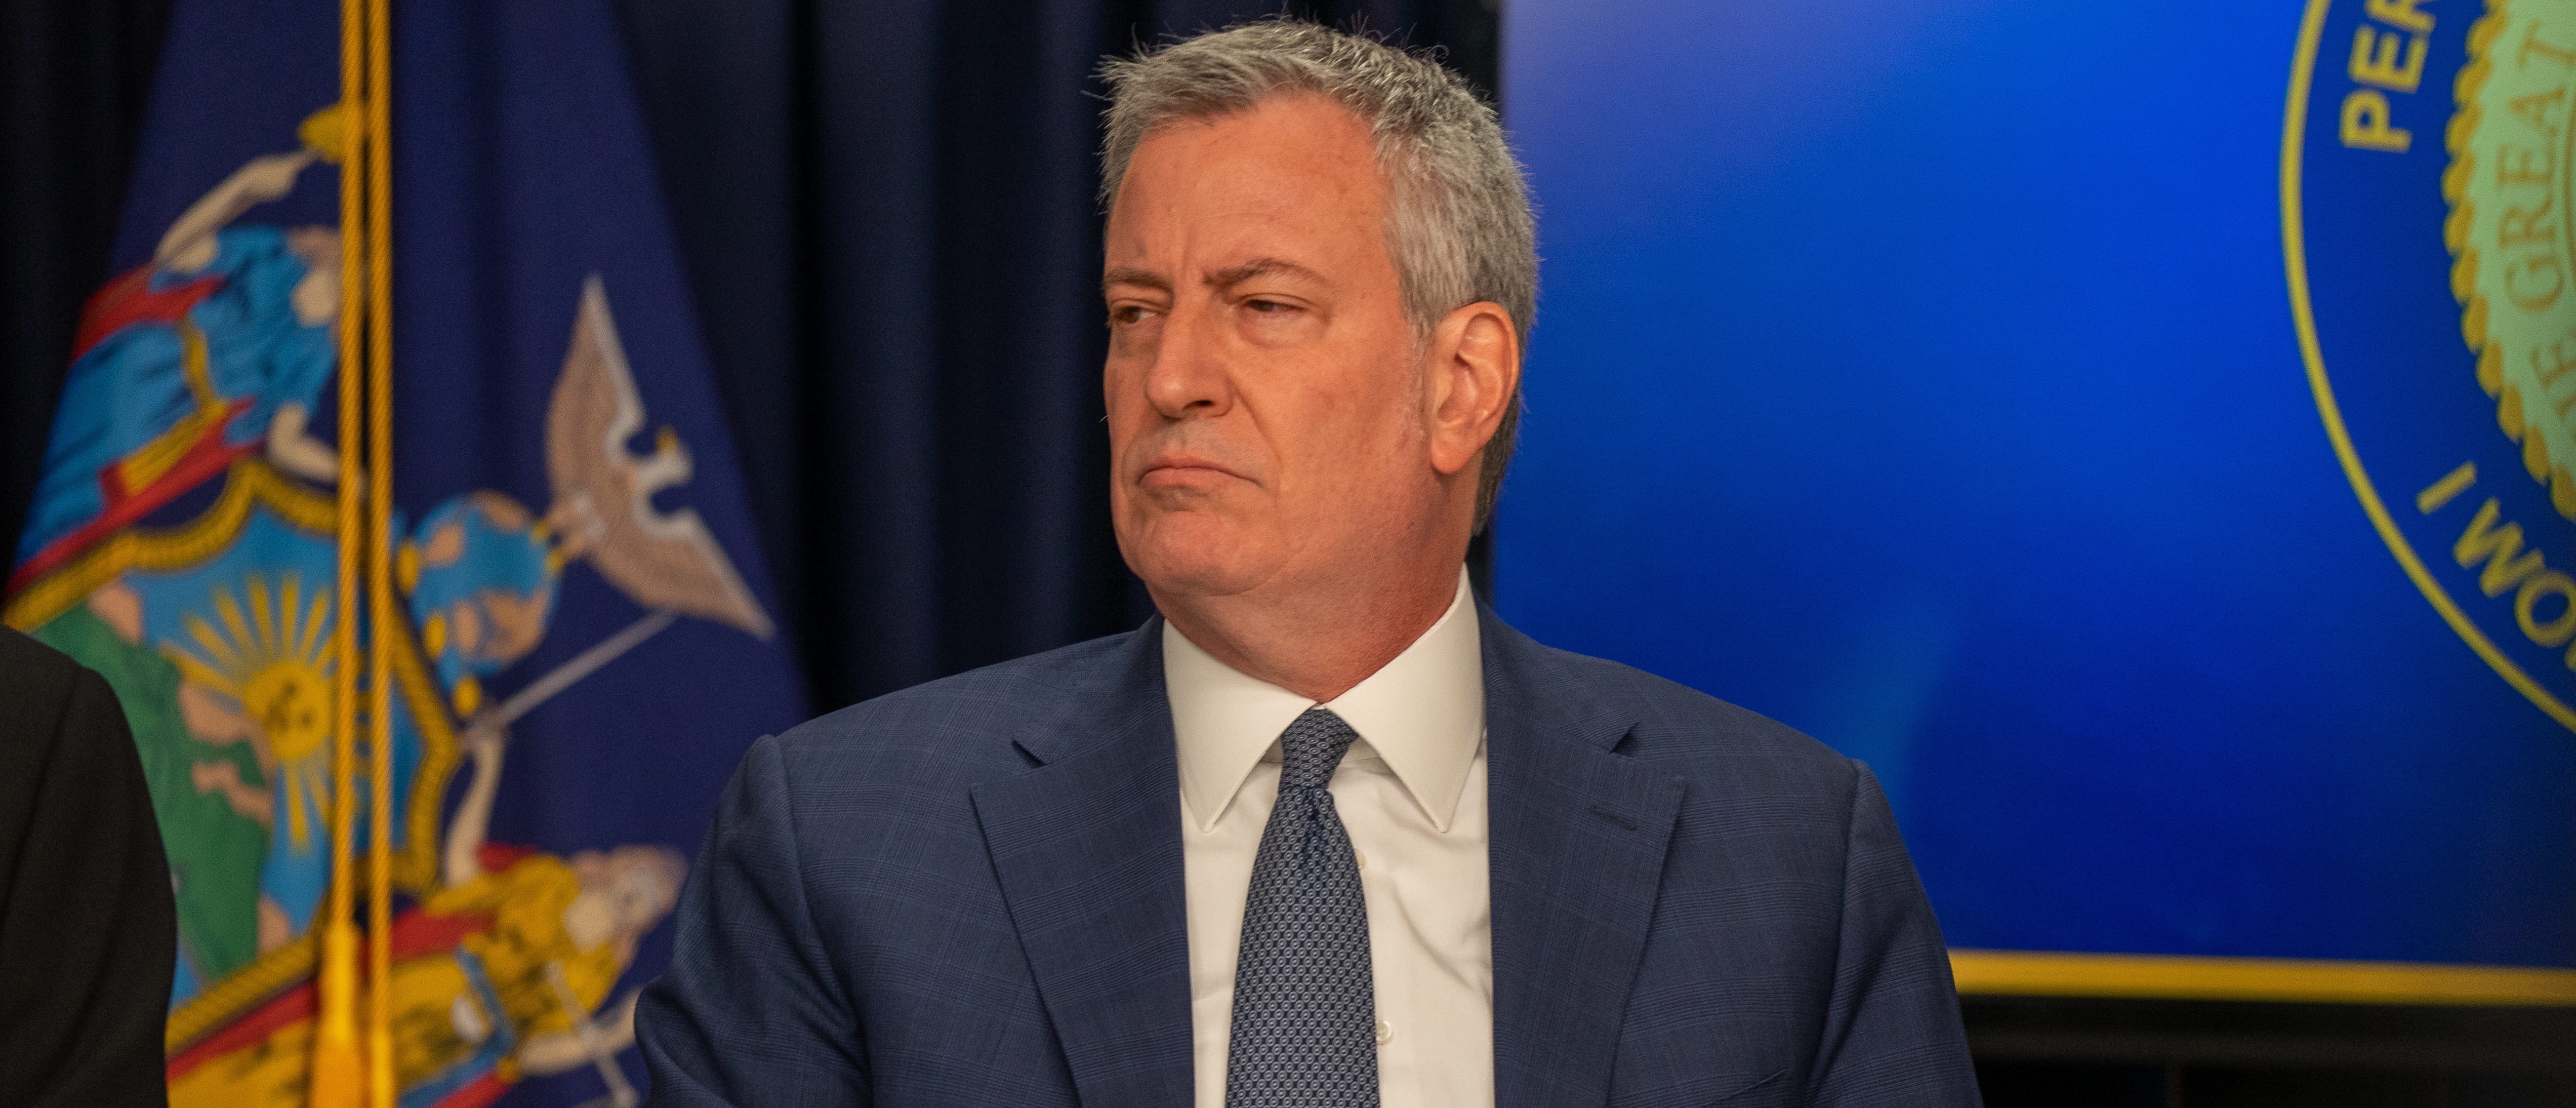 New York City Mayor Bill De Blasio: New Yorkers Should Be Prepared For 'Shelter-In-Place' Order